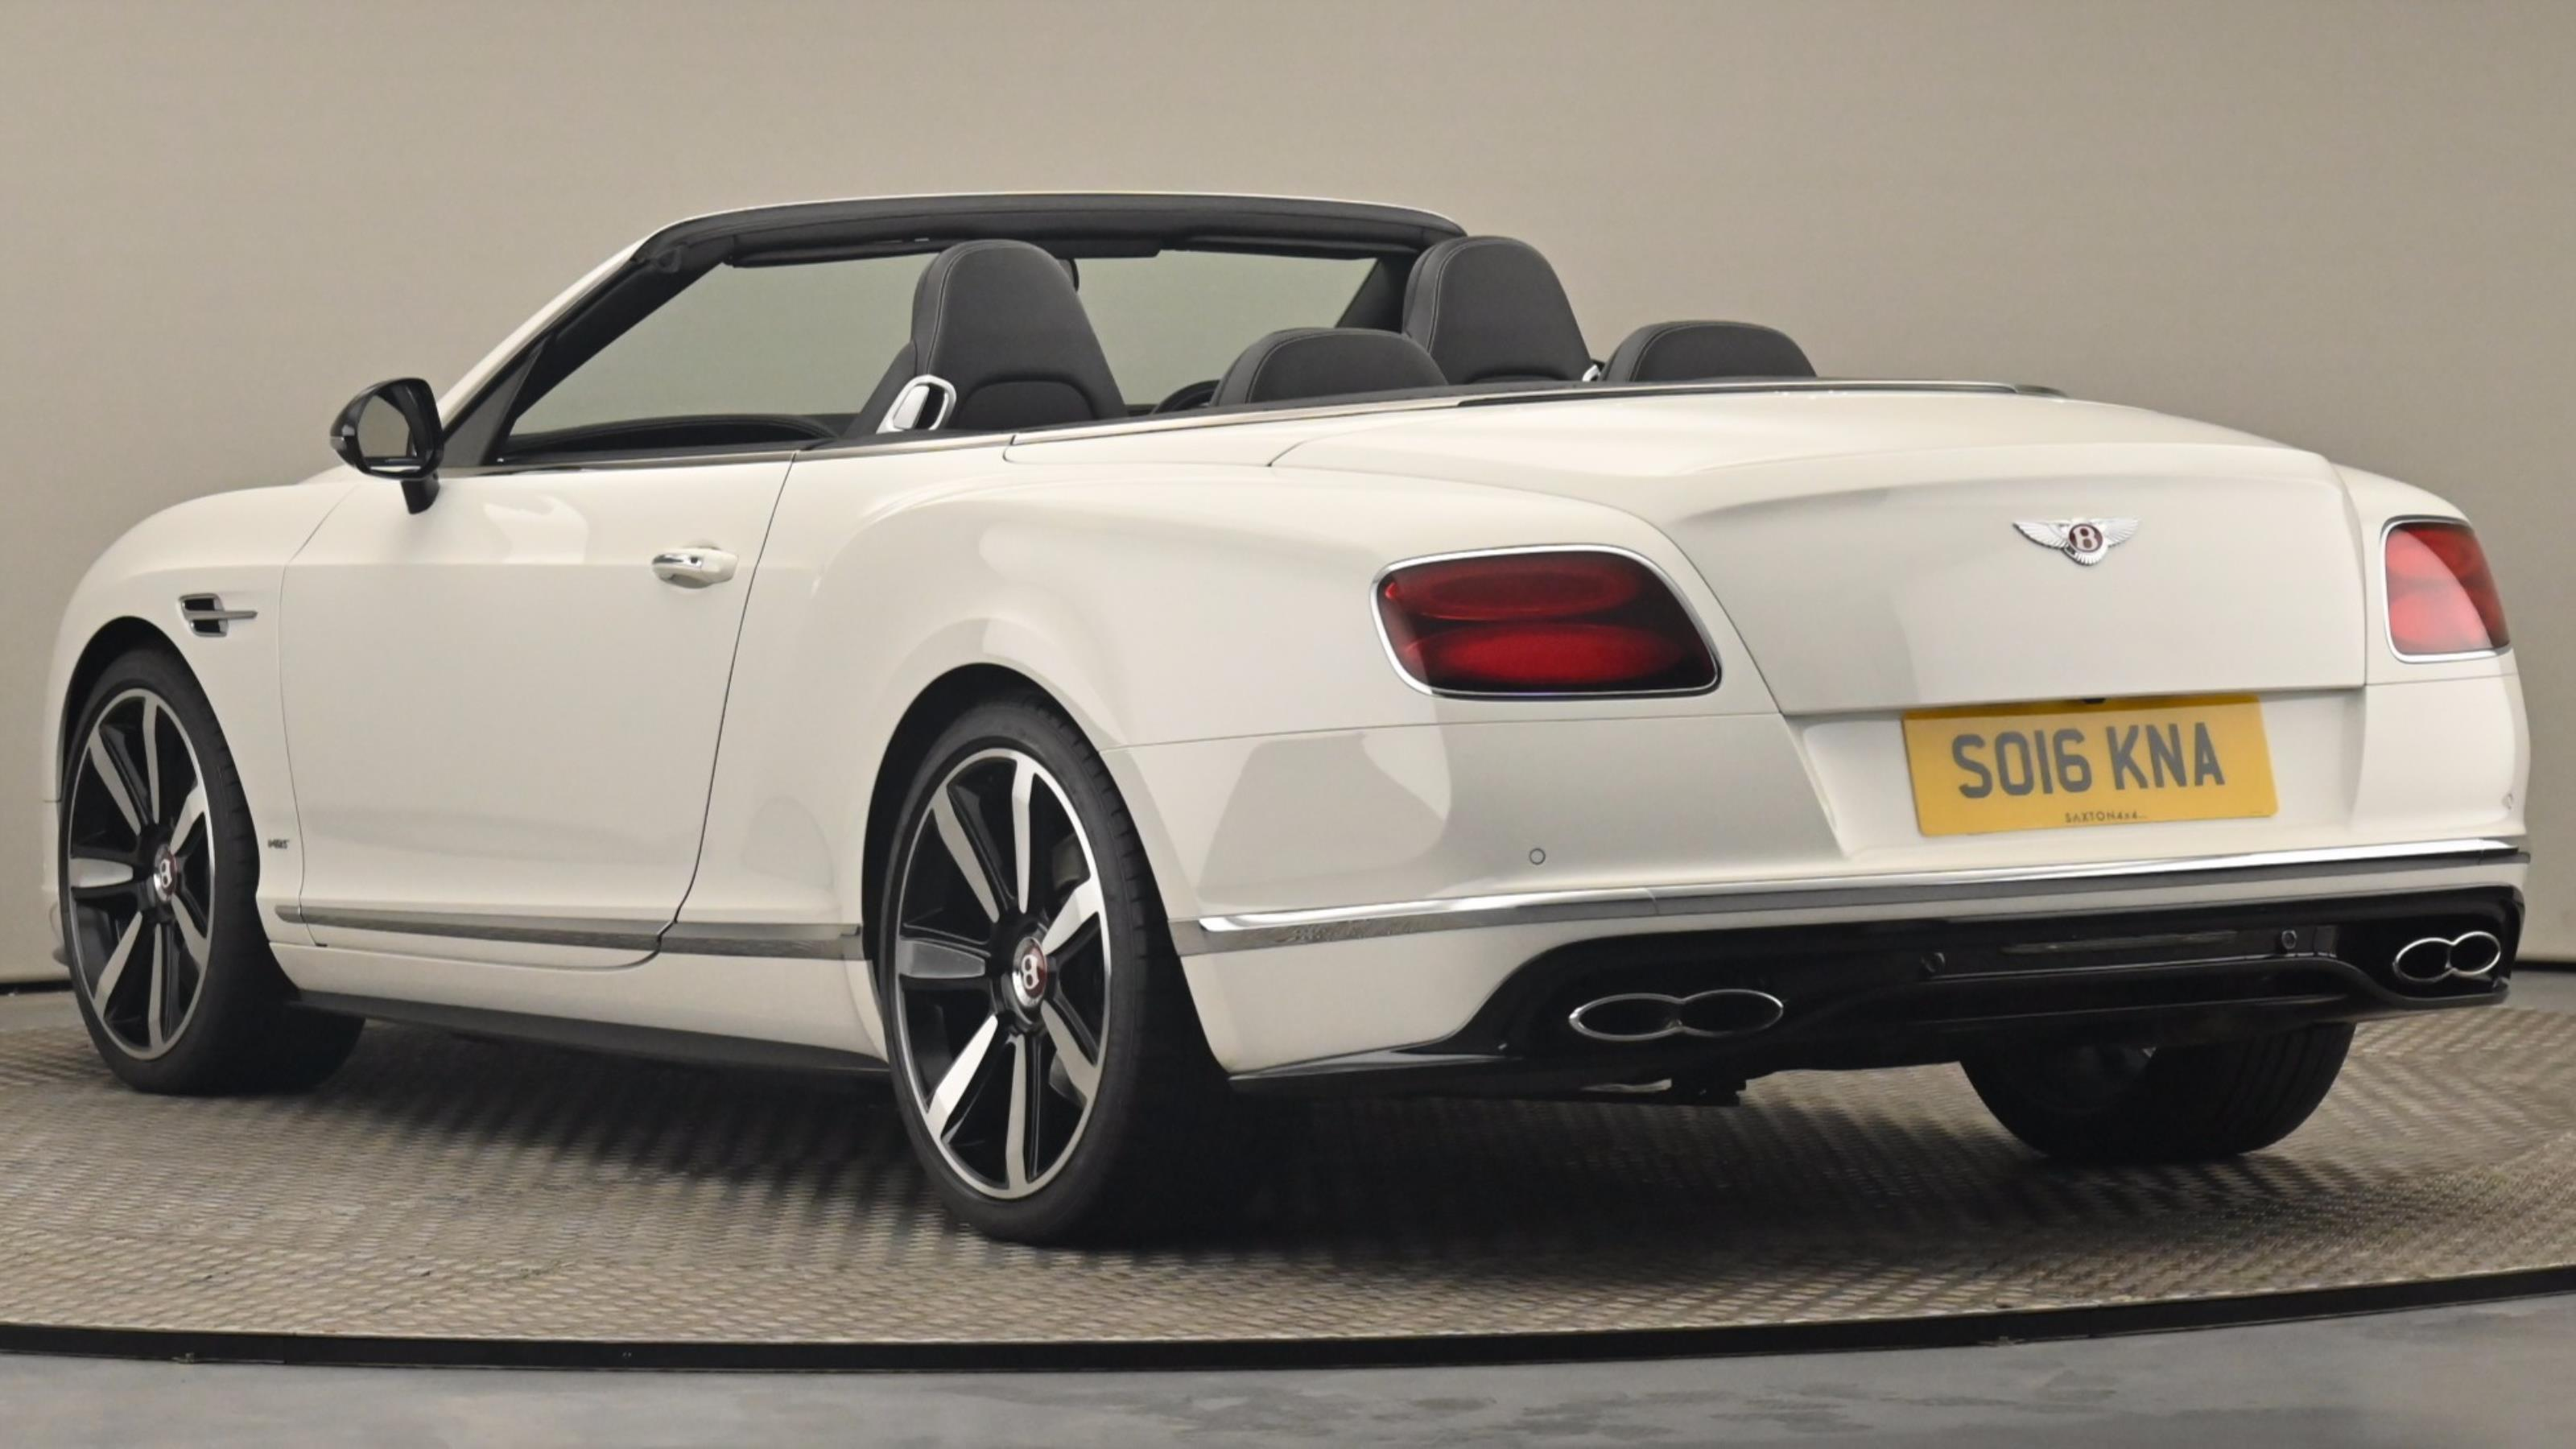 Used 2016 Bentley CONTINENTAL GTC 4.0 V8 S Mulliner Driving Spec 2dr Auto WHITE at Saxton4x4